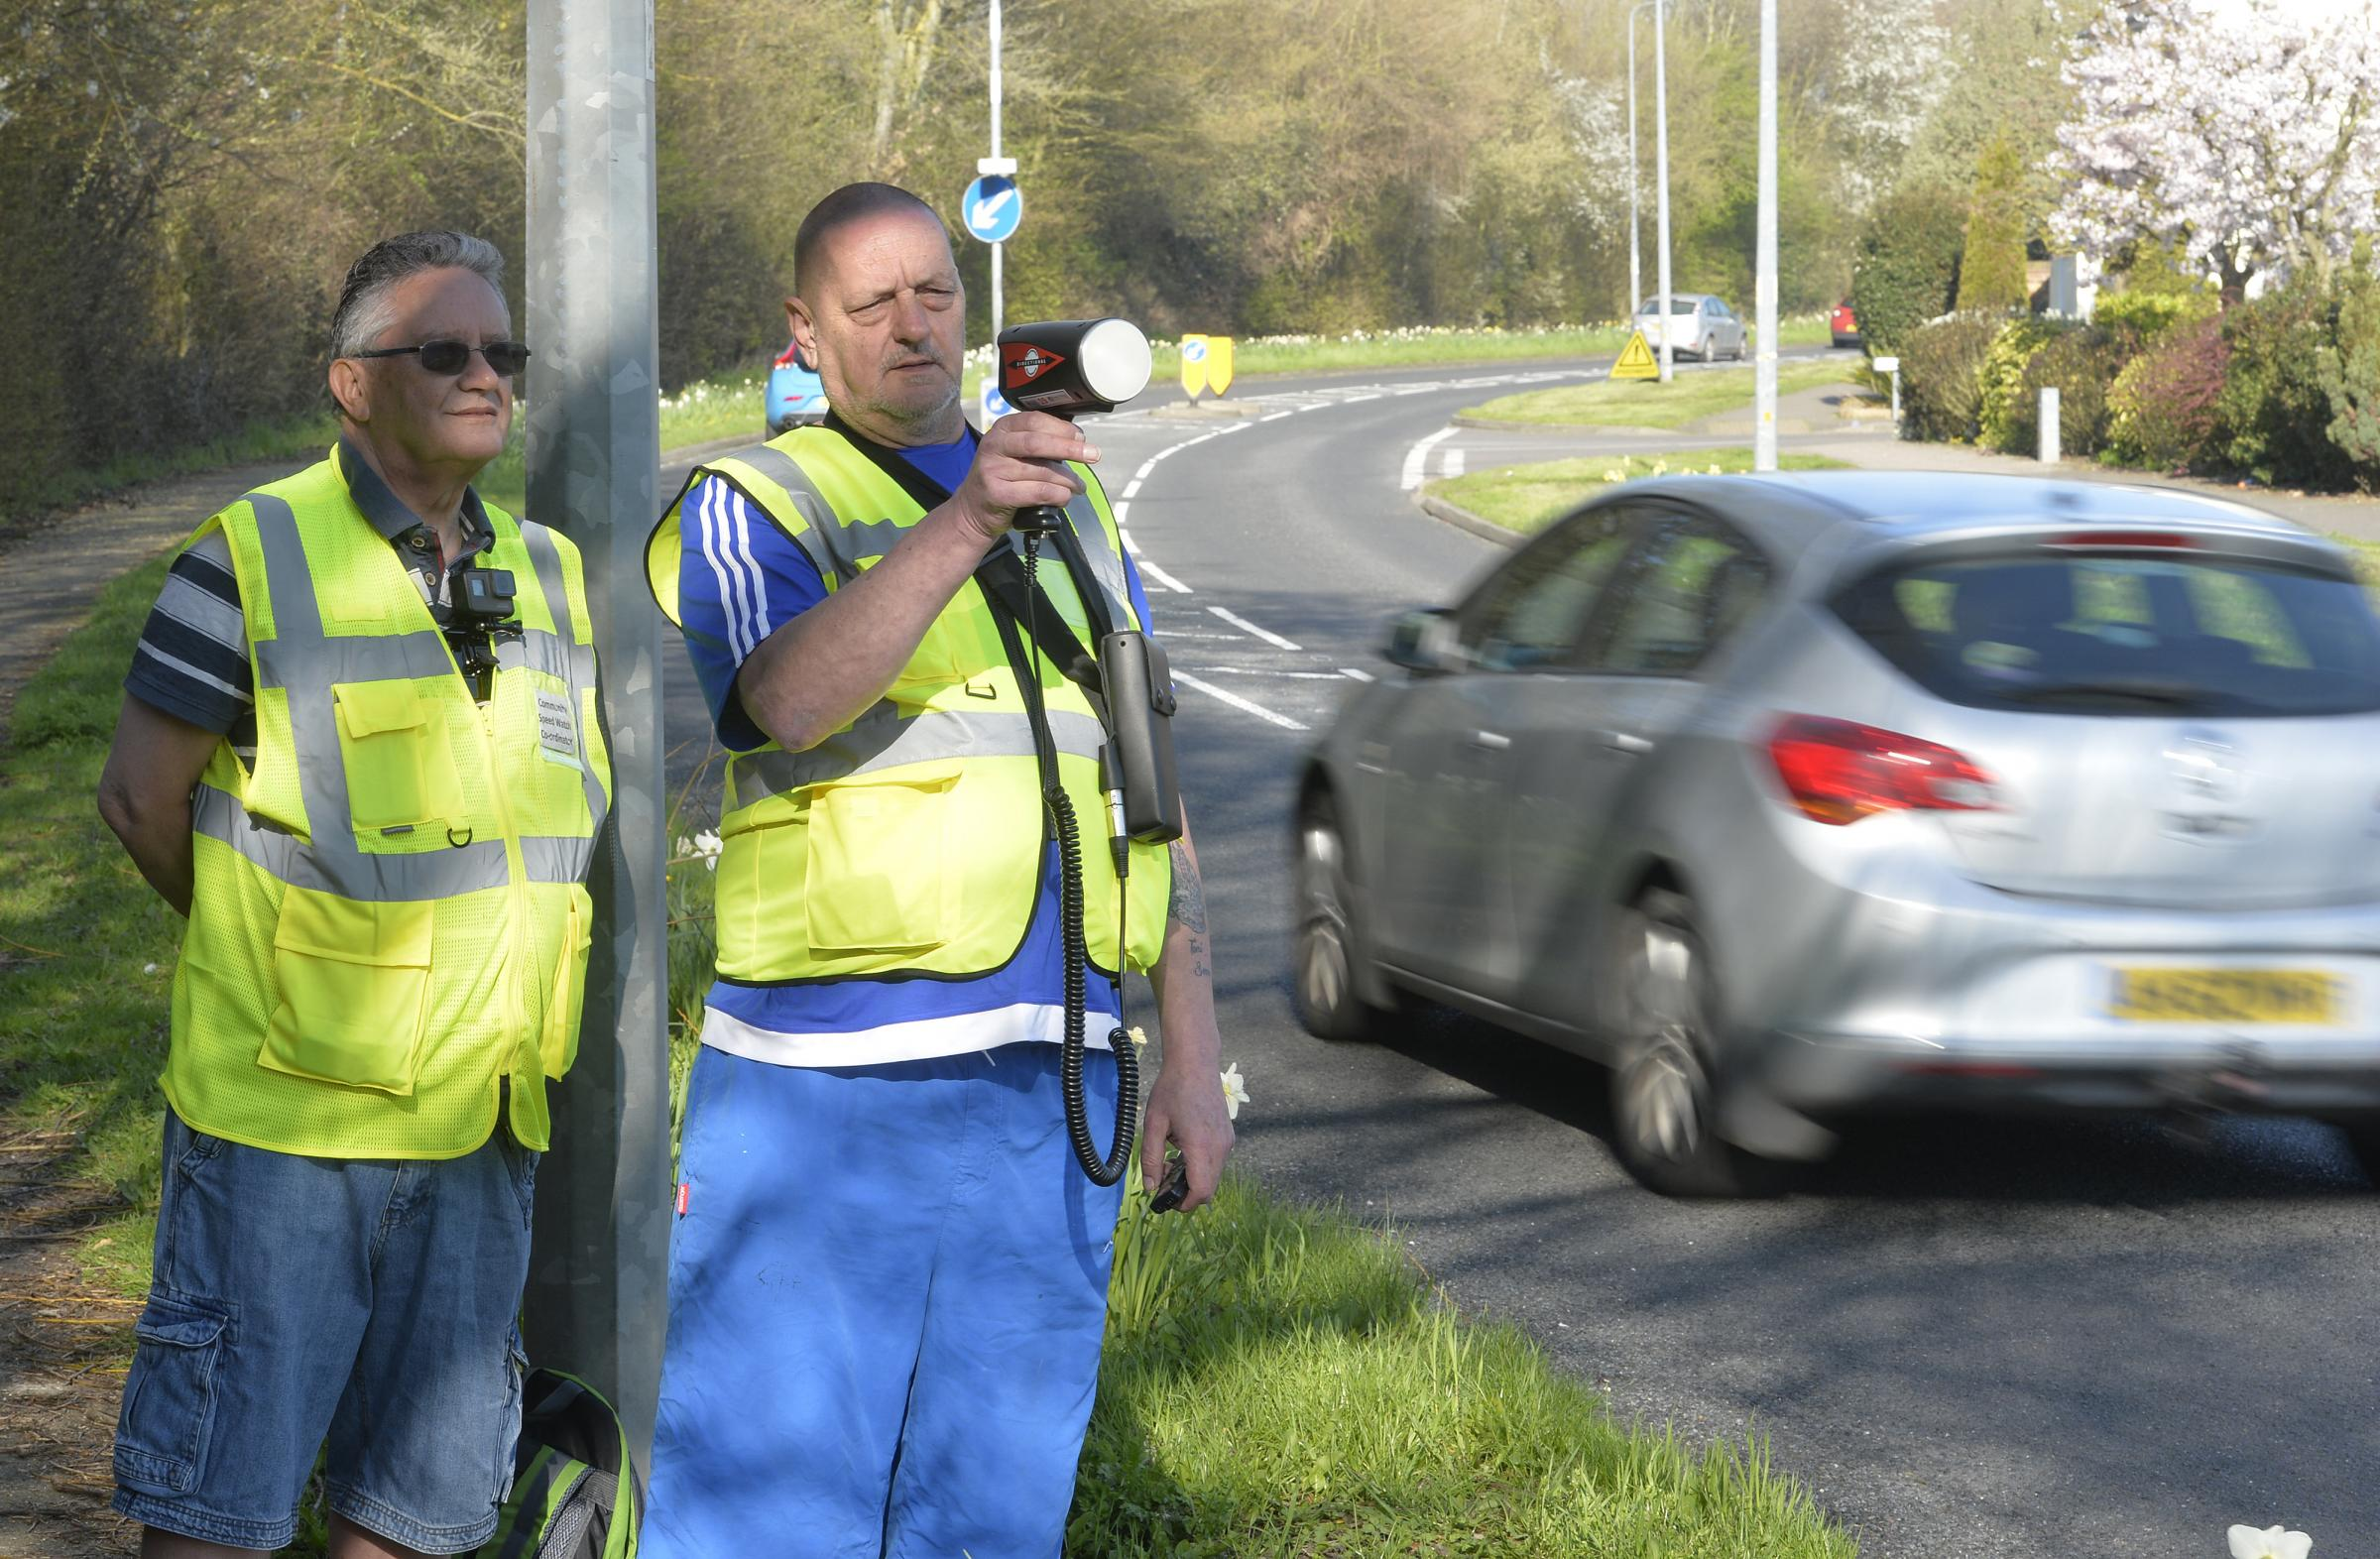 Angry driver threatened to kill two speed watch volunteers who caught him driving 6mph too fast